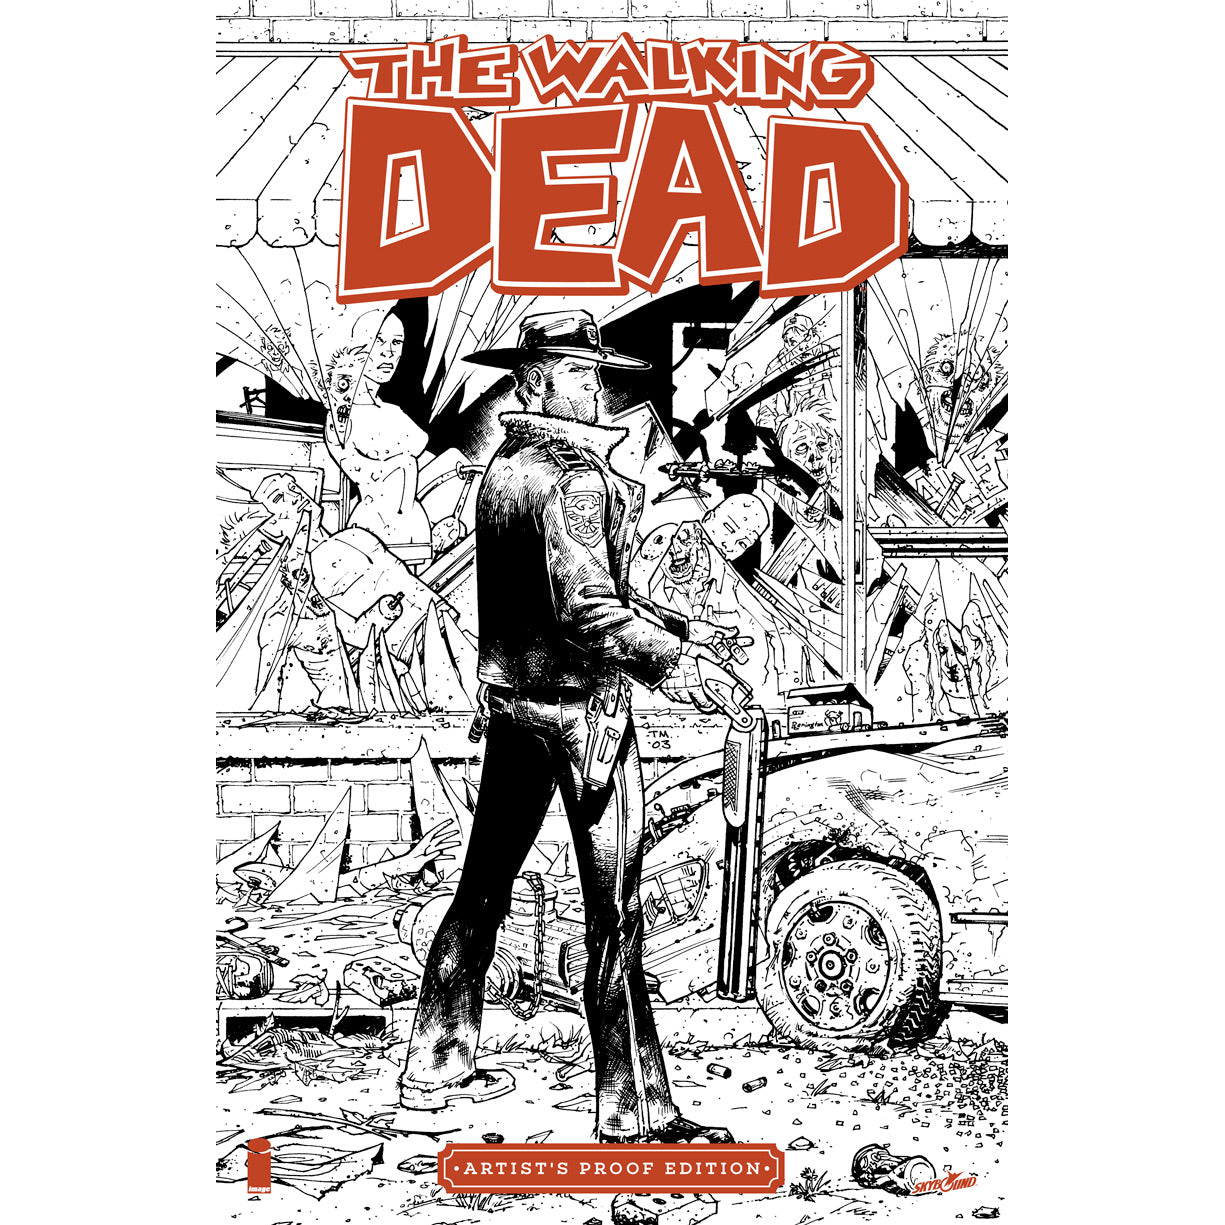 THE WALKING DEAD #1 Image Giant-Sized Artist's Proof Edition